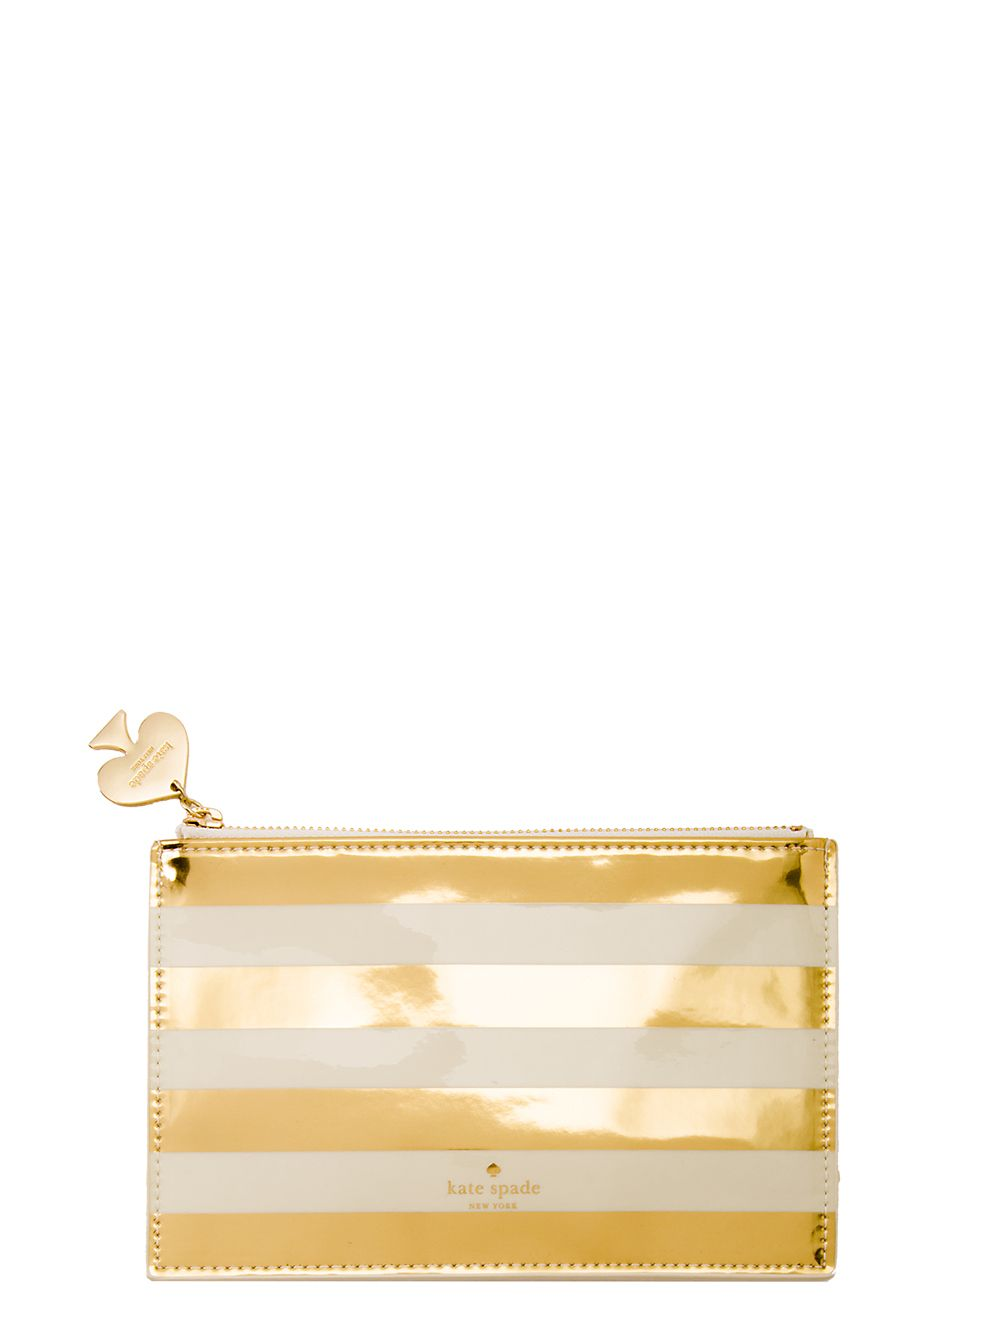 gold stripe pencil pouch | kate spade new york(ケイト・スペード ニューヨーク)